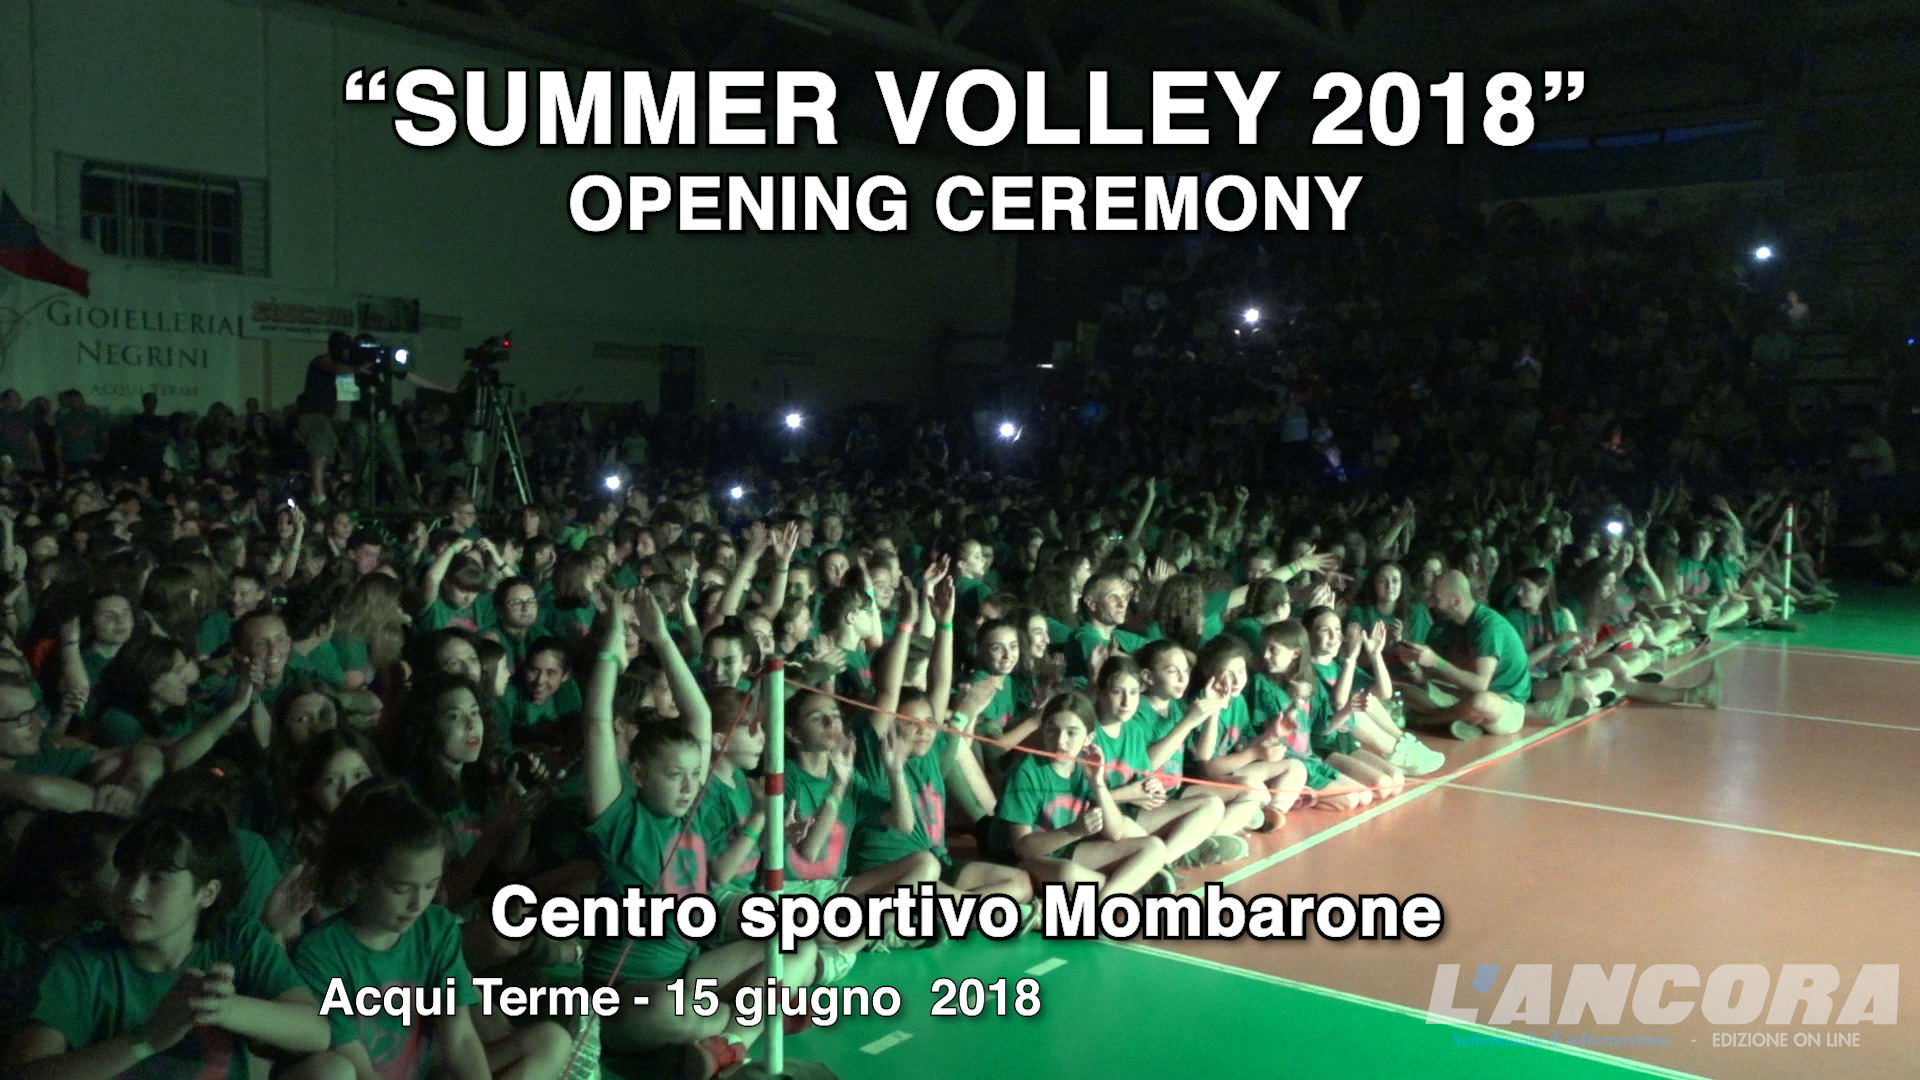 Acqui Terme - Cerimonia di apertura del Summer Volley 2018 (VIDEO)